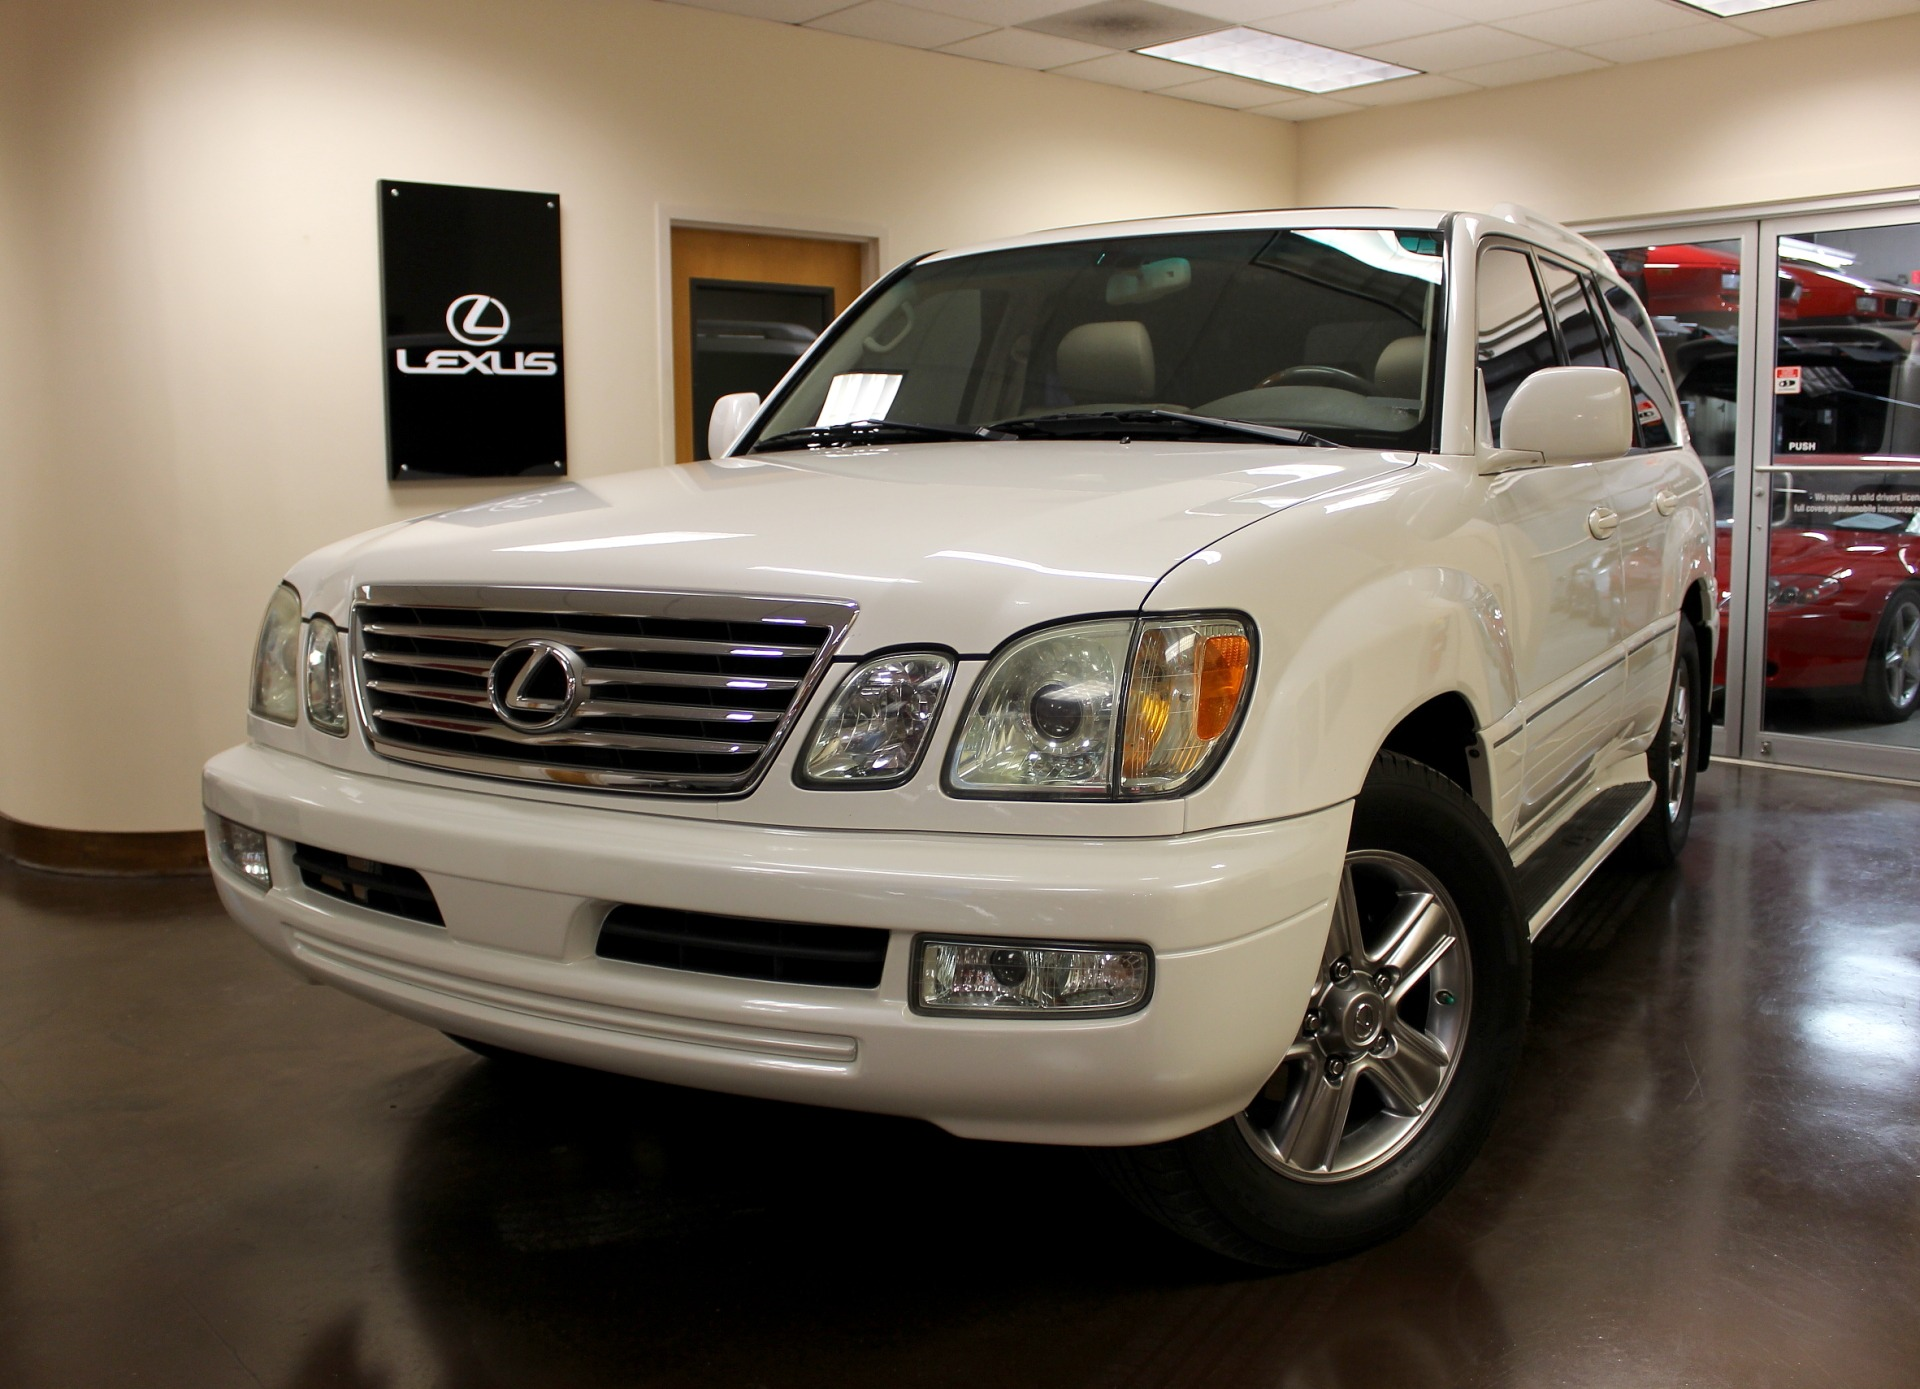 used 2007 lexus lx 470 stock p3788a ultra luxury car from merlin auto group. Black Bedroom Furniture Sets. Home Design Ideas